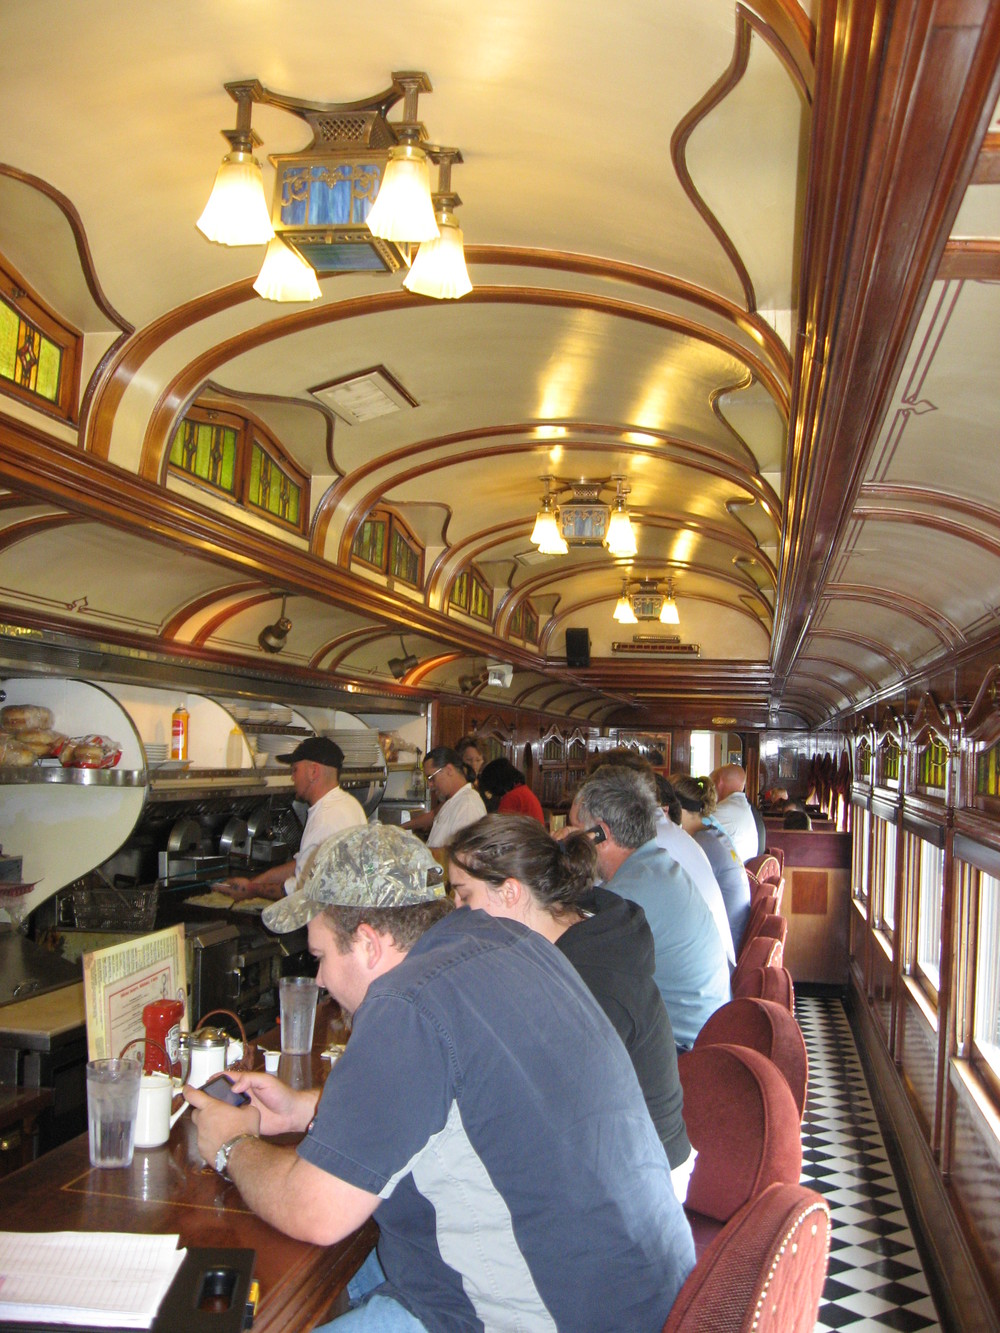 Everyone loves a walk back in time at Frank's Diner located in an early 20th century dining car.